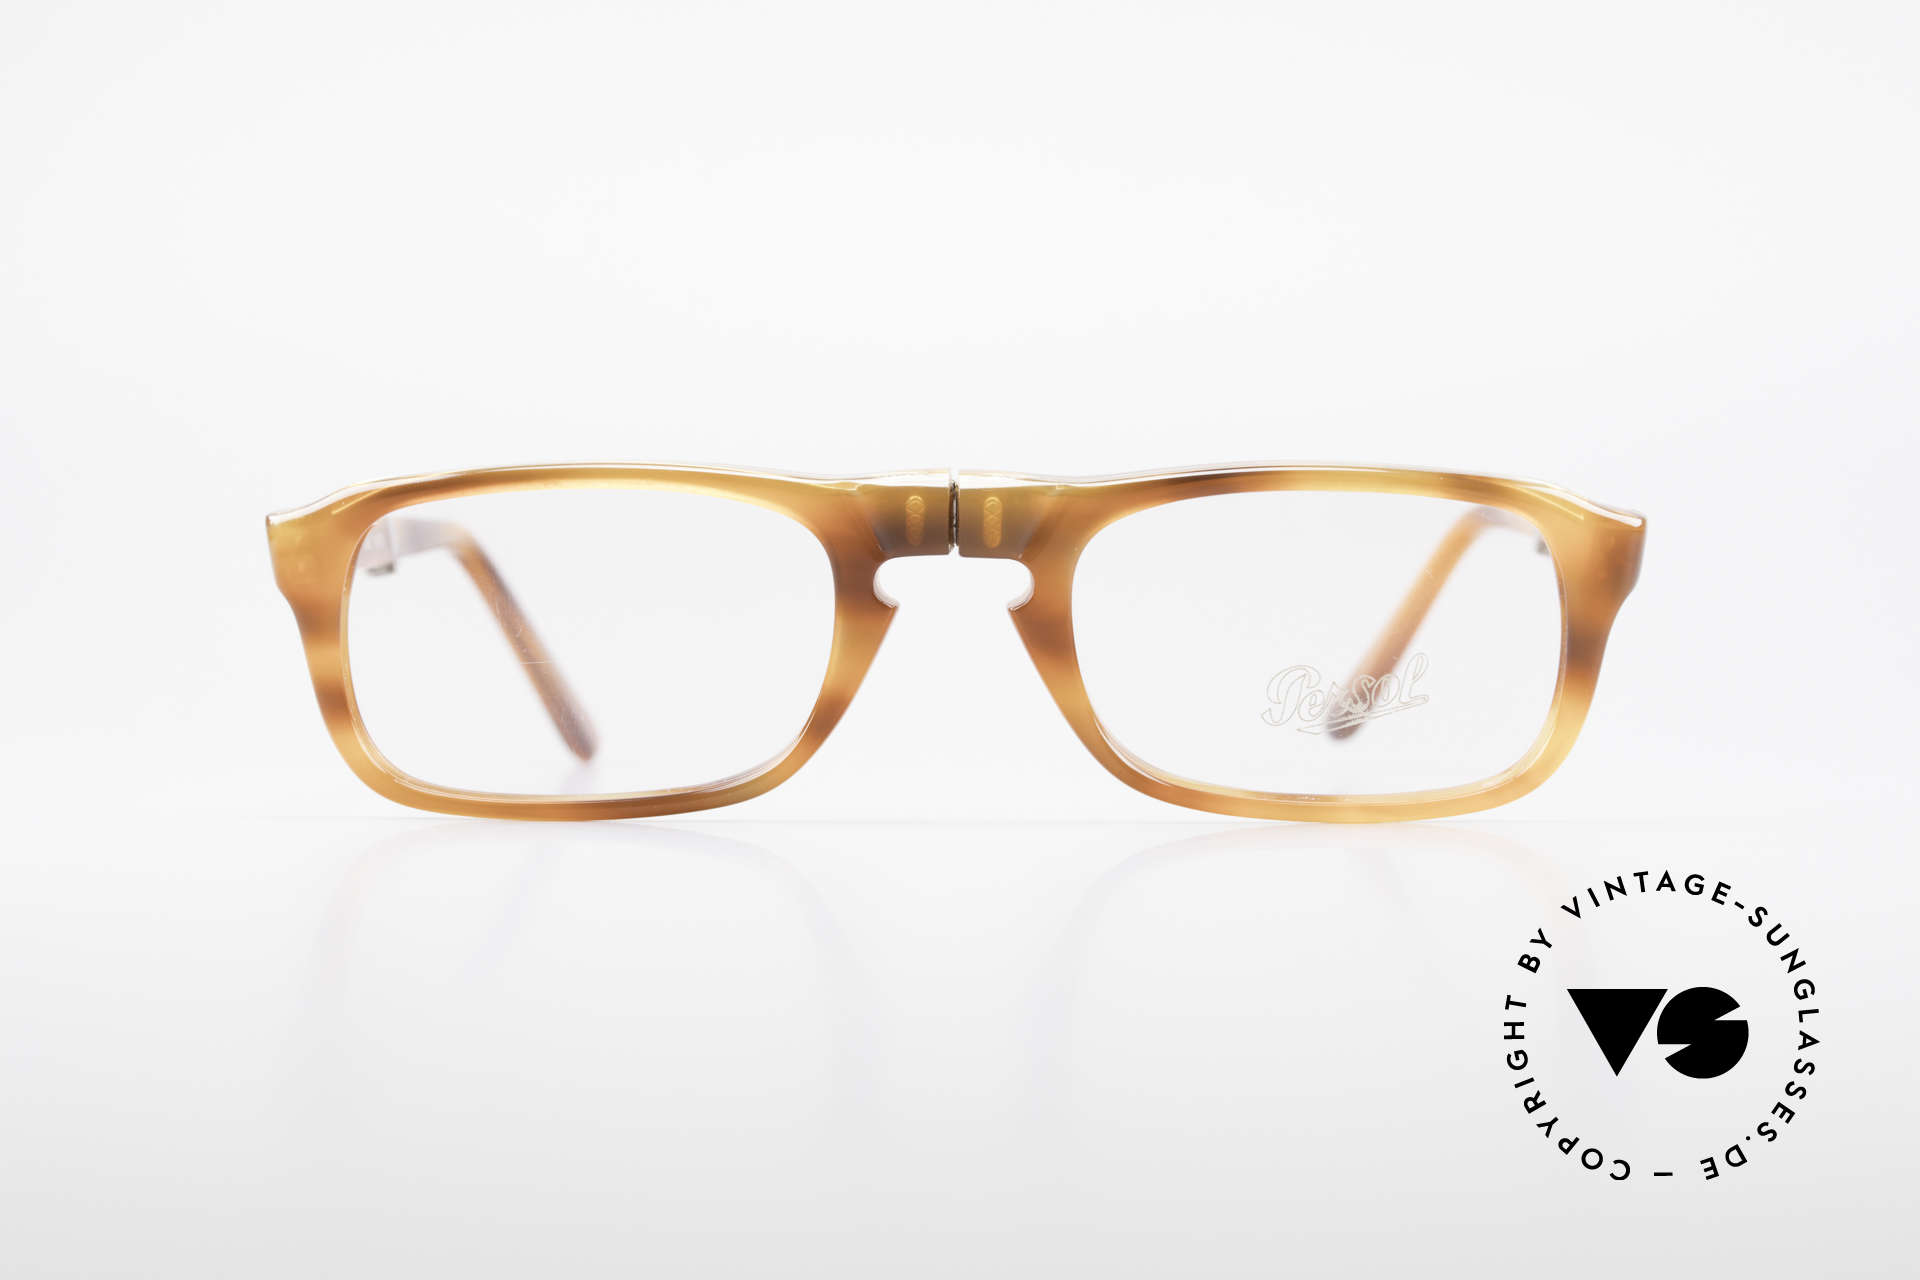 Persol Ratti 813 Folding Folding Reading Eyeglasses, Steve McQueen made the Persol folding models famous, Made for Men